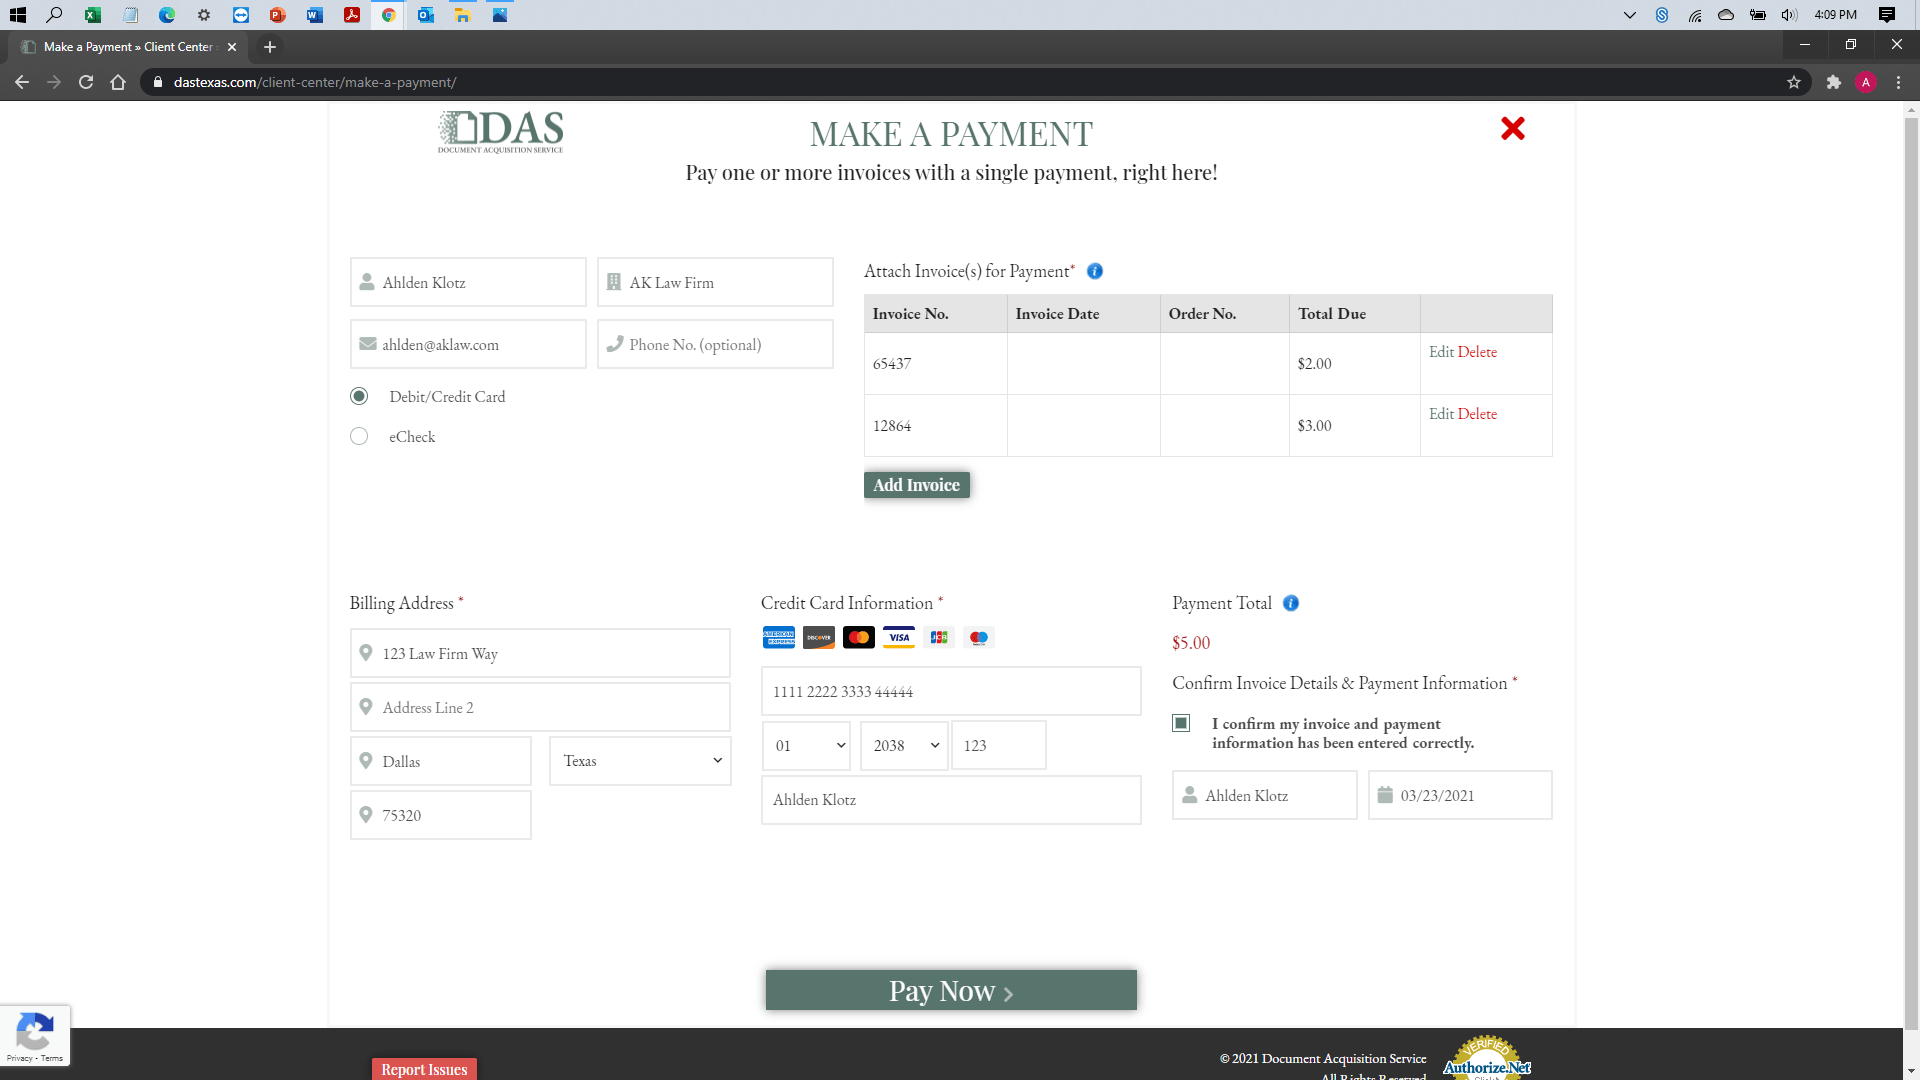 [help docs] Make a Payment - Credit Debit - Ready to Submit